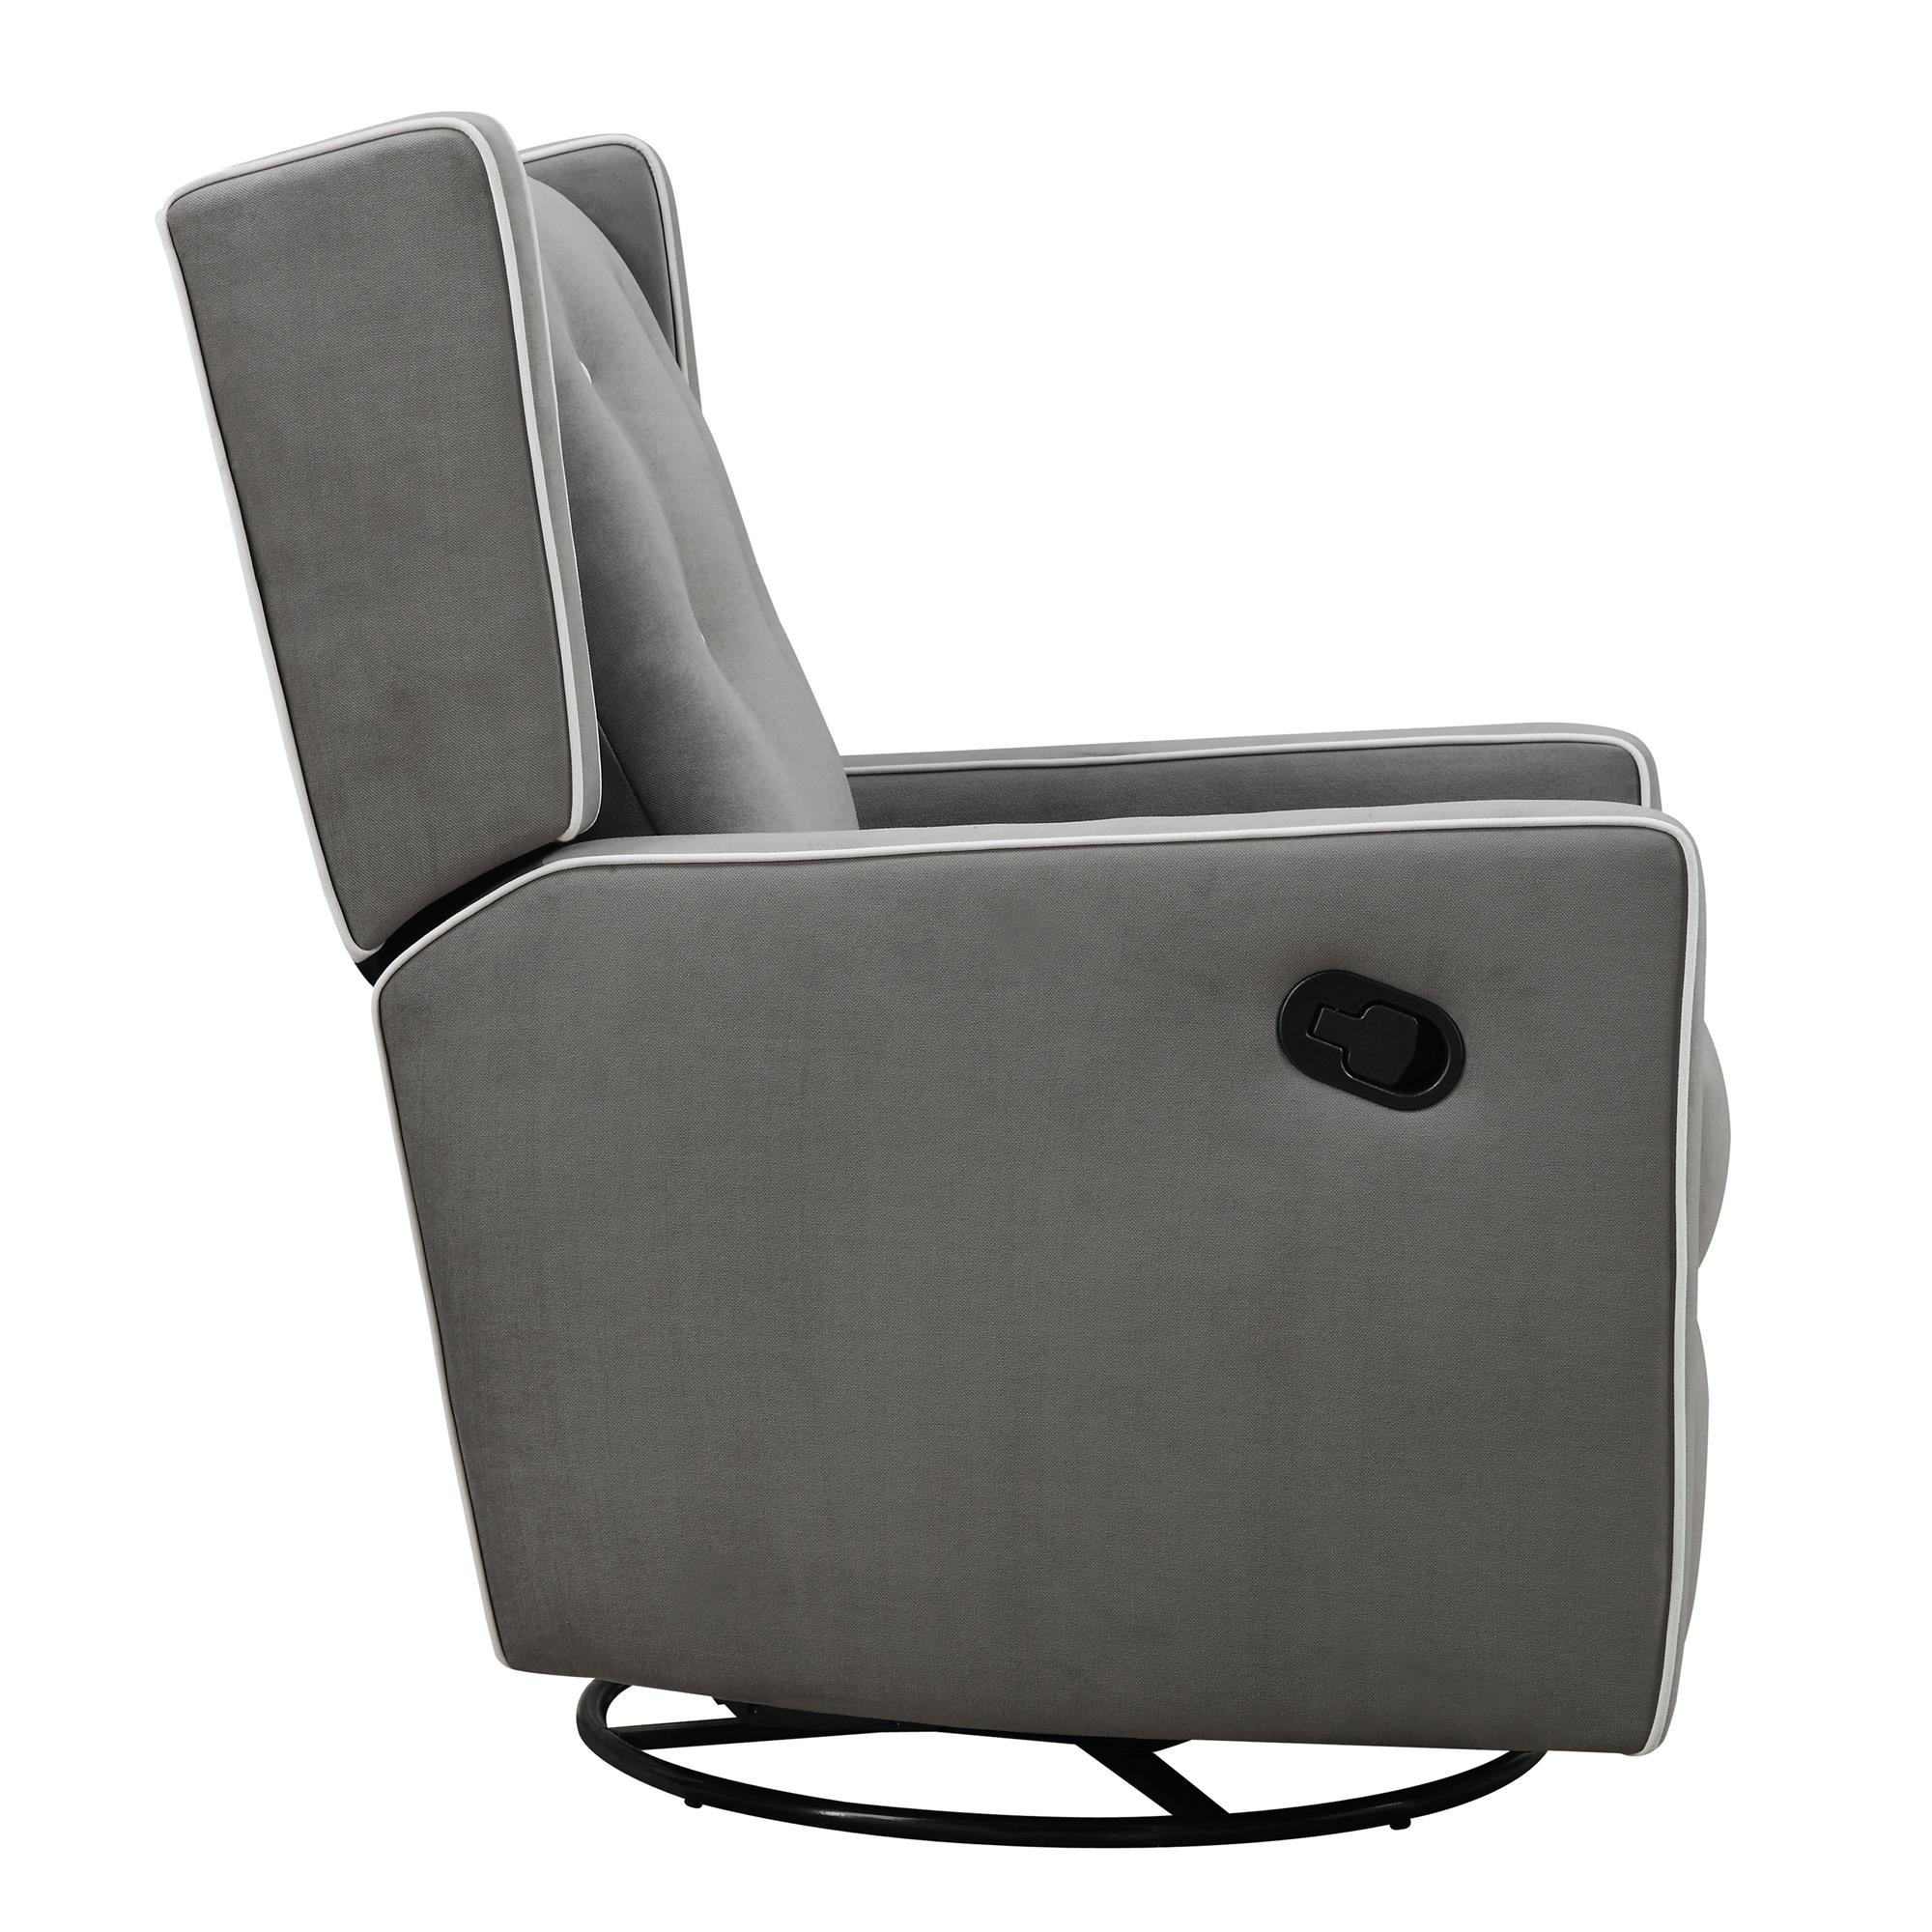 Baby Relax Mikayla Swivel Gliding Recliner, Gray Microfiber by Baby Relax (Image #4)